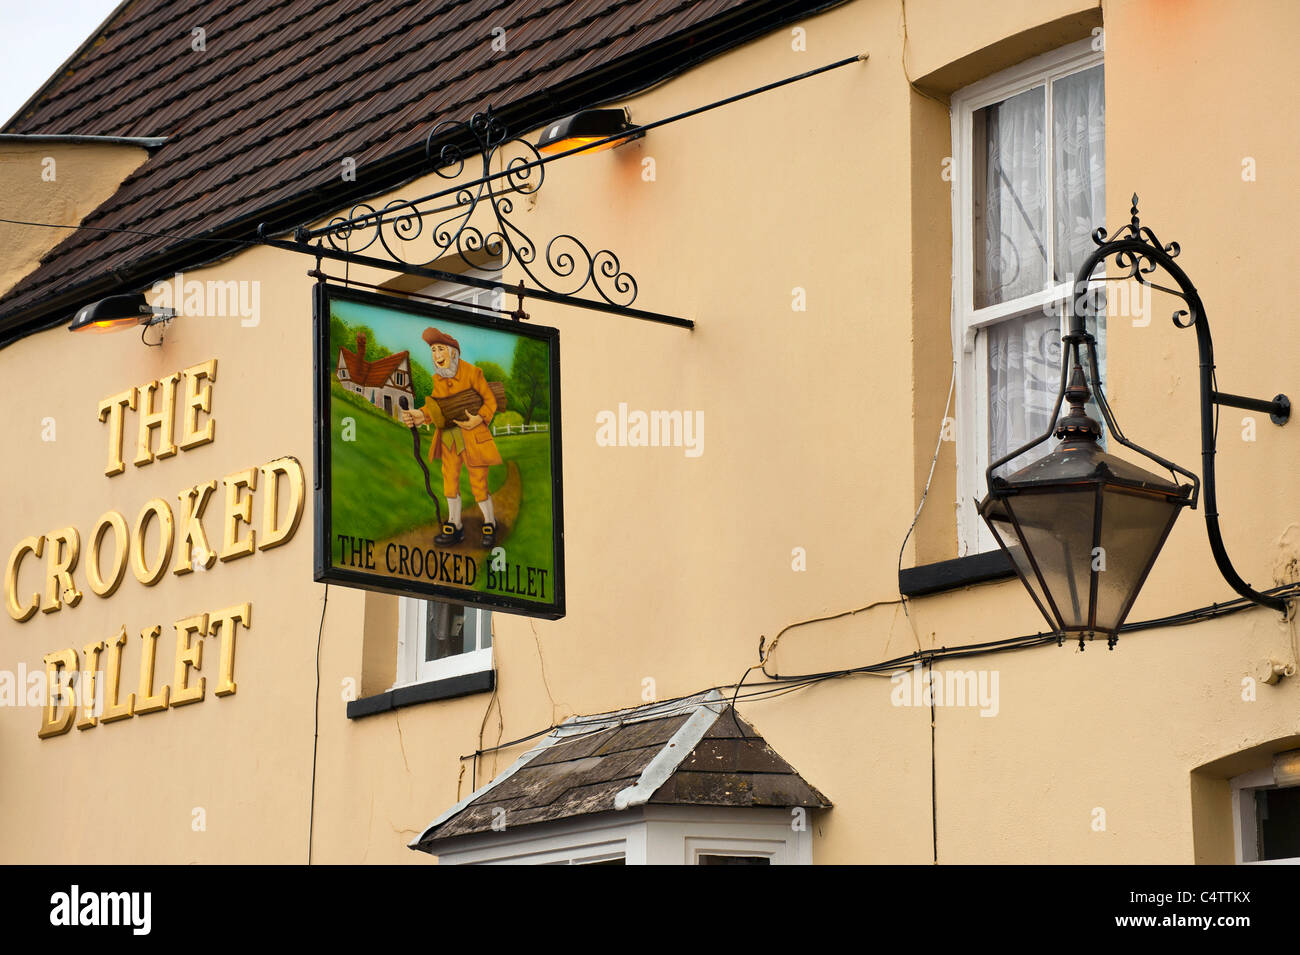 Sign for the Crooked Billet Pub in Old Leigh, Essex - Stock Image